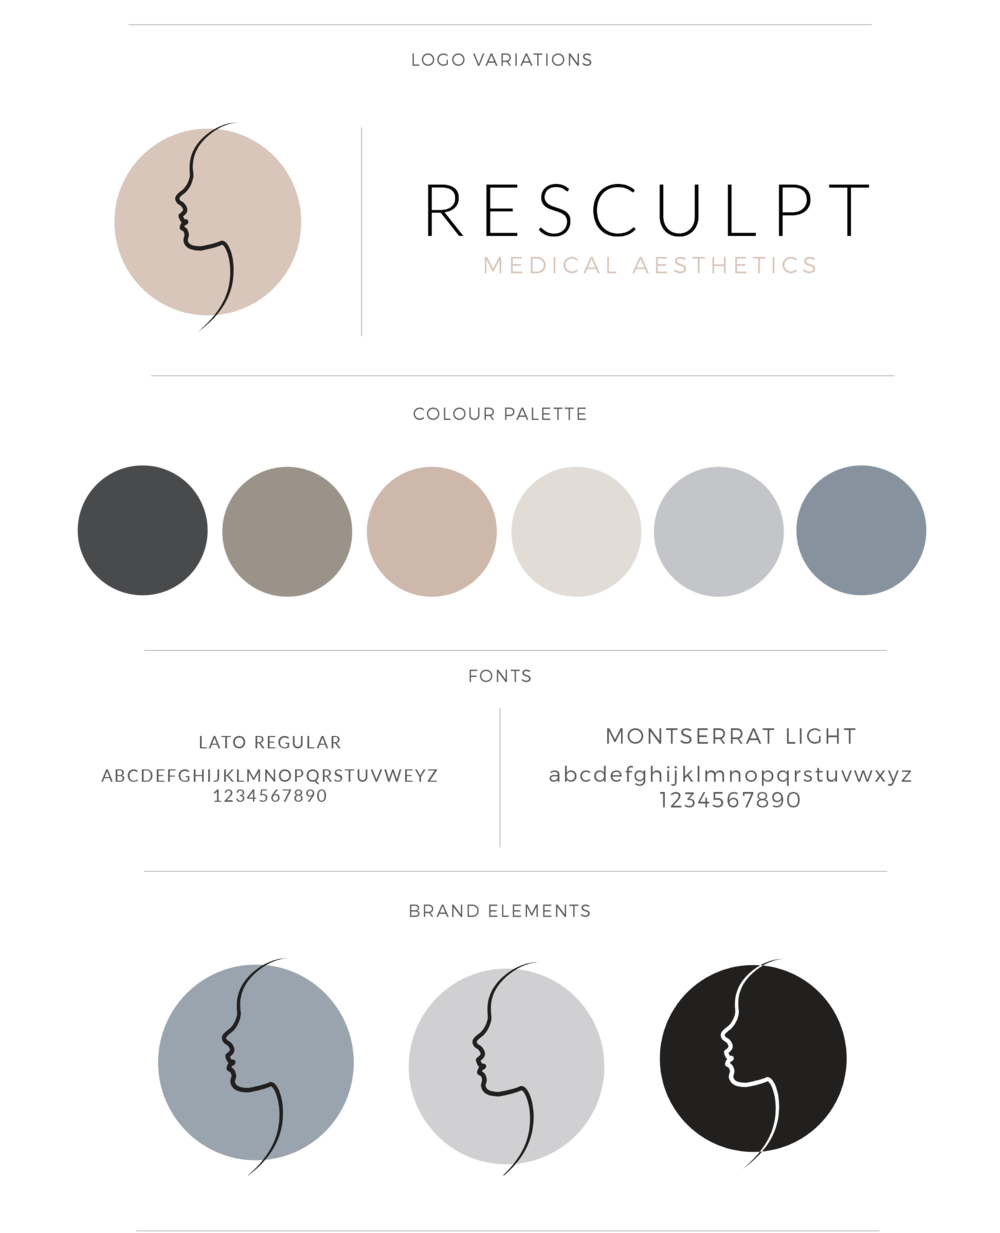 resculpt-BRAND-design-wilson-and-ward.png